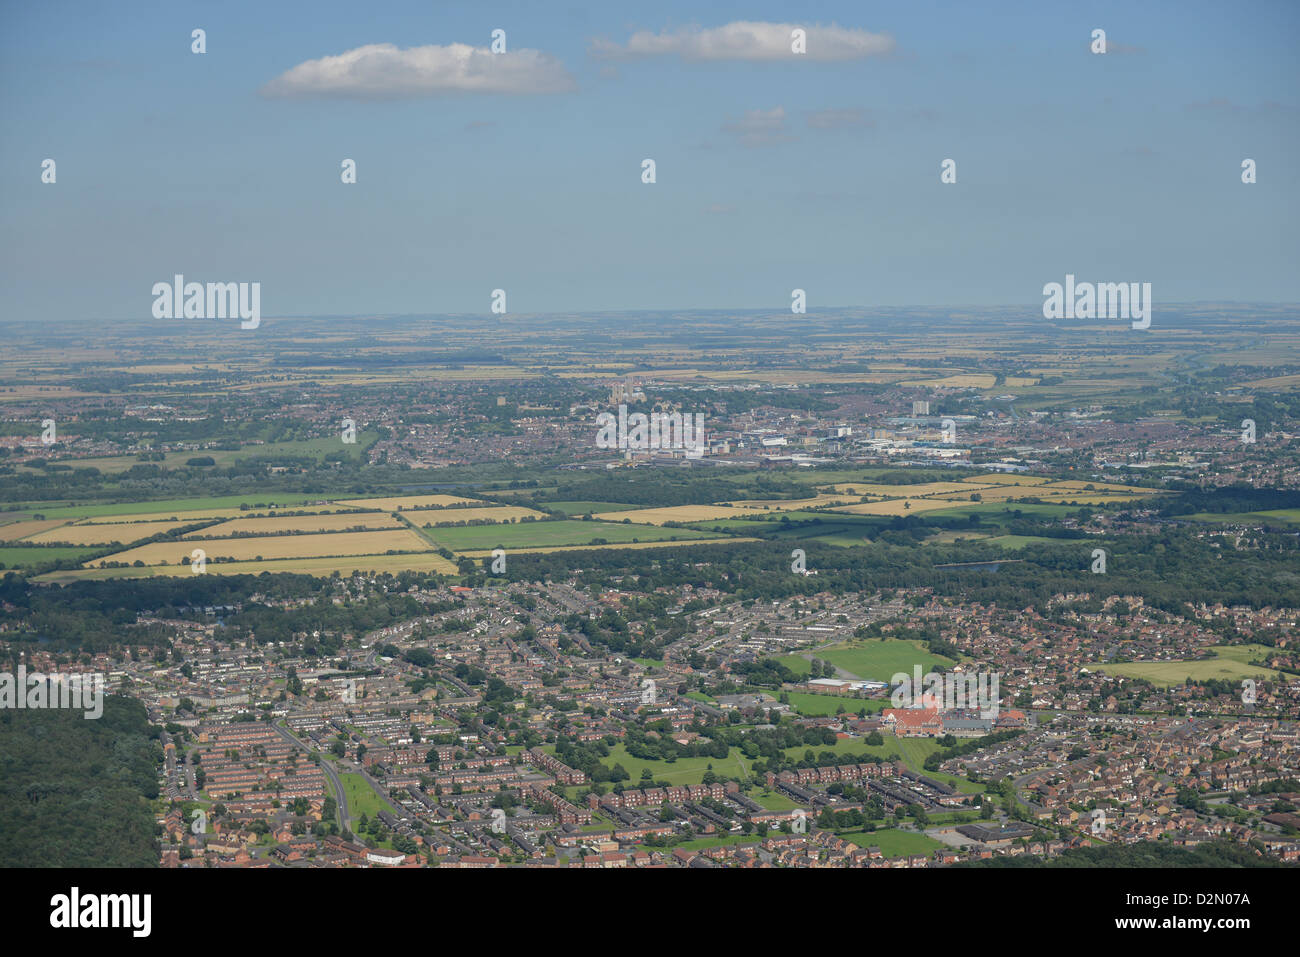 Aerial Photograph looking over suburbs of Lincoln - Stock Image